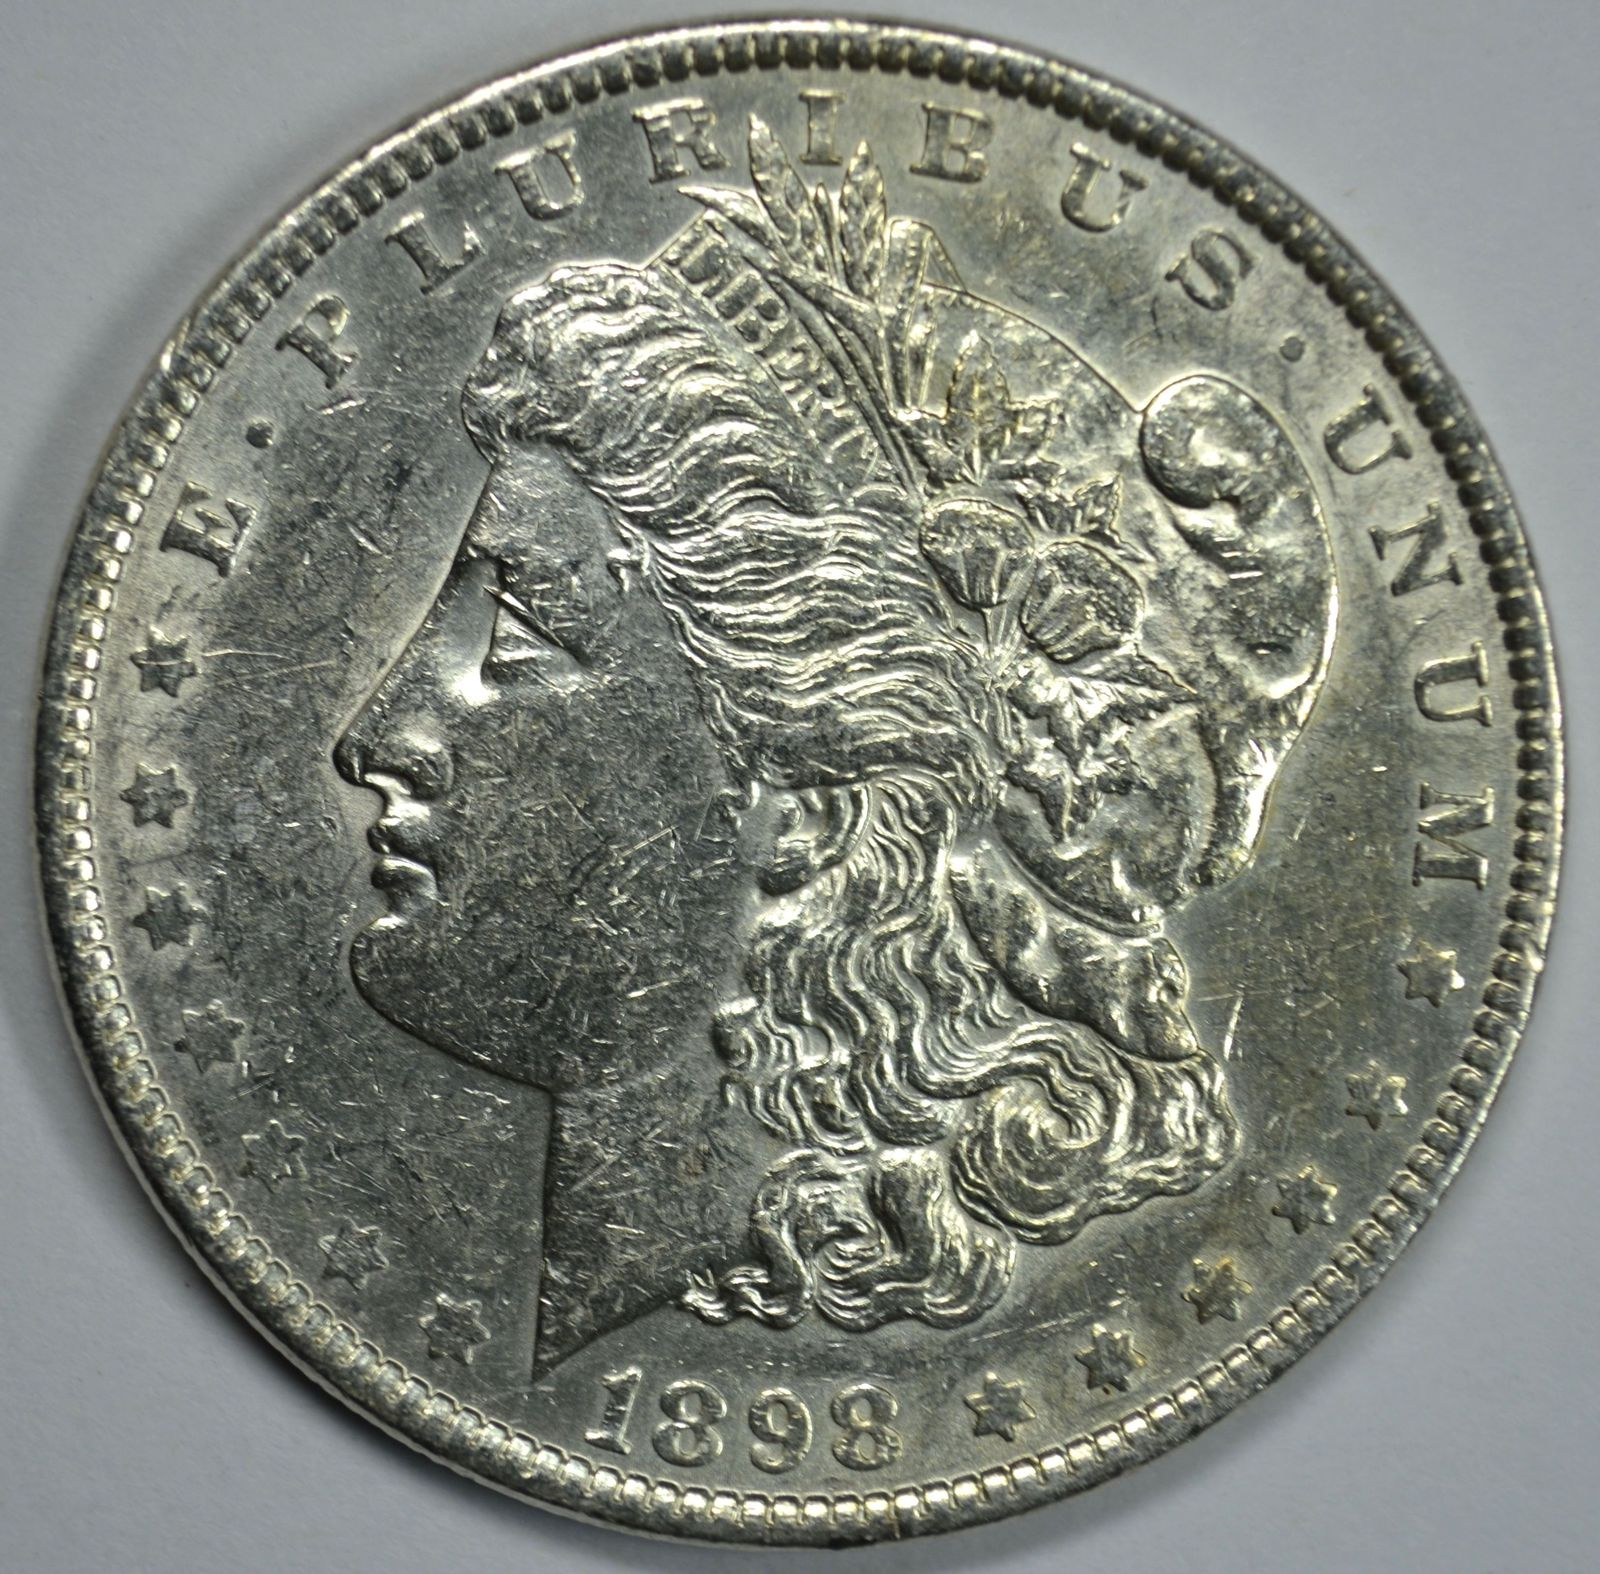 Primary image for 1898 P Morgan circulated silver dollar XF details